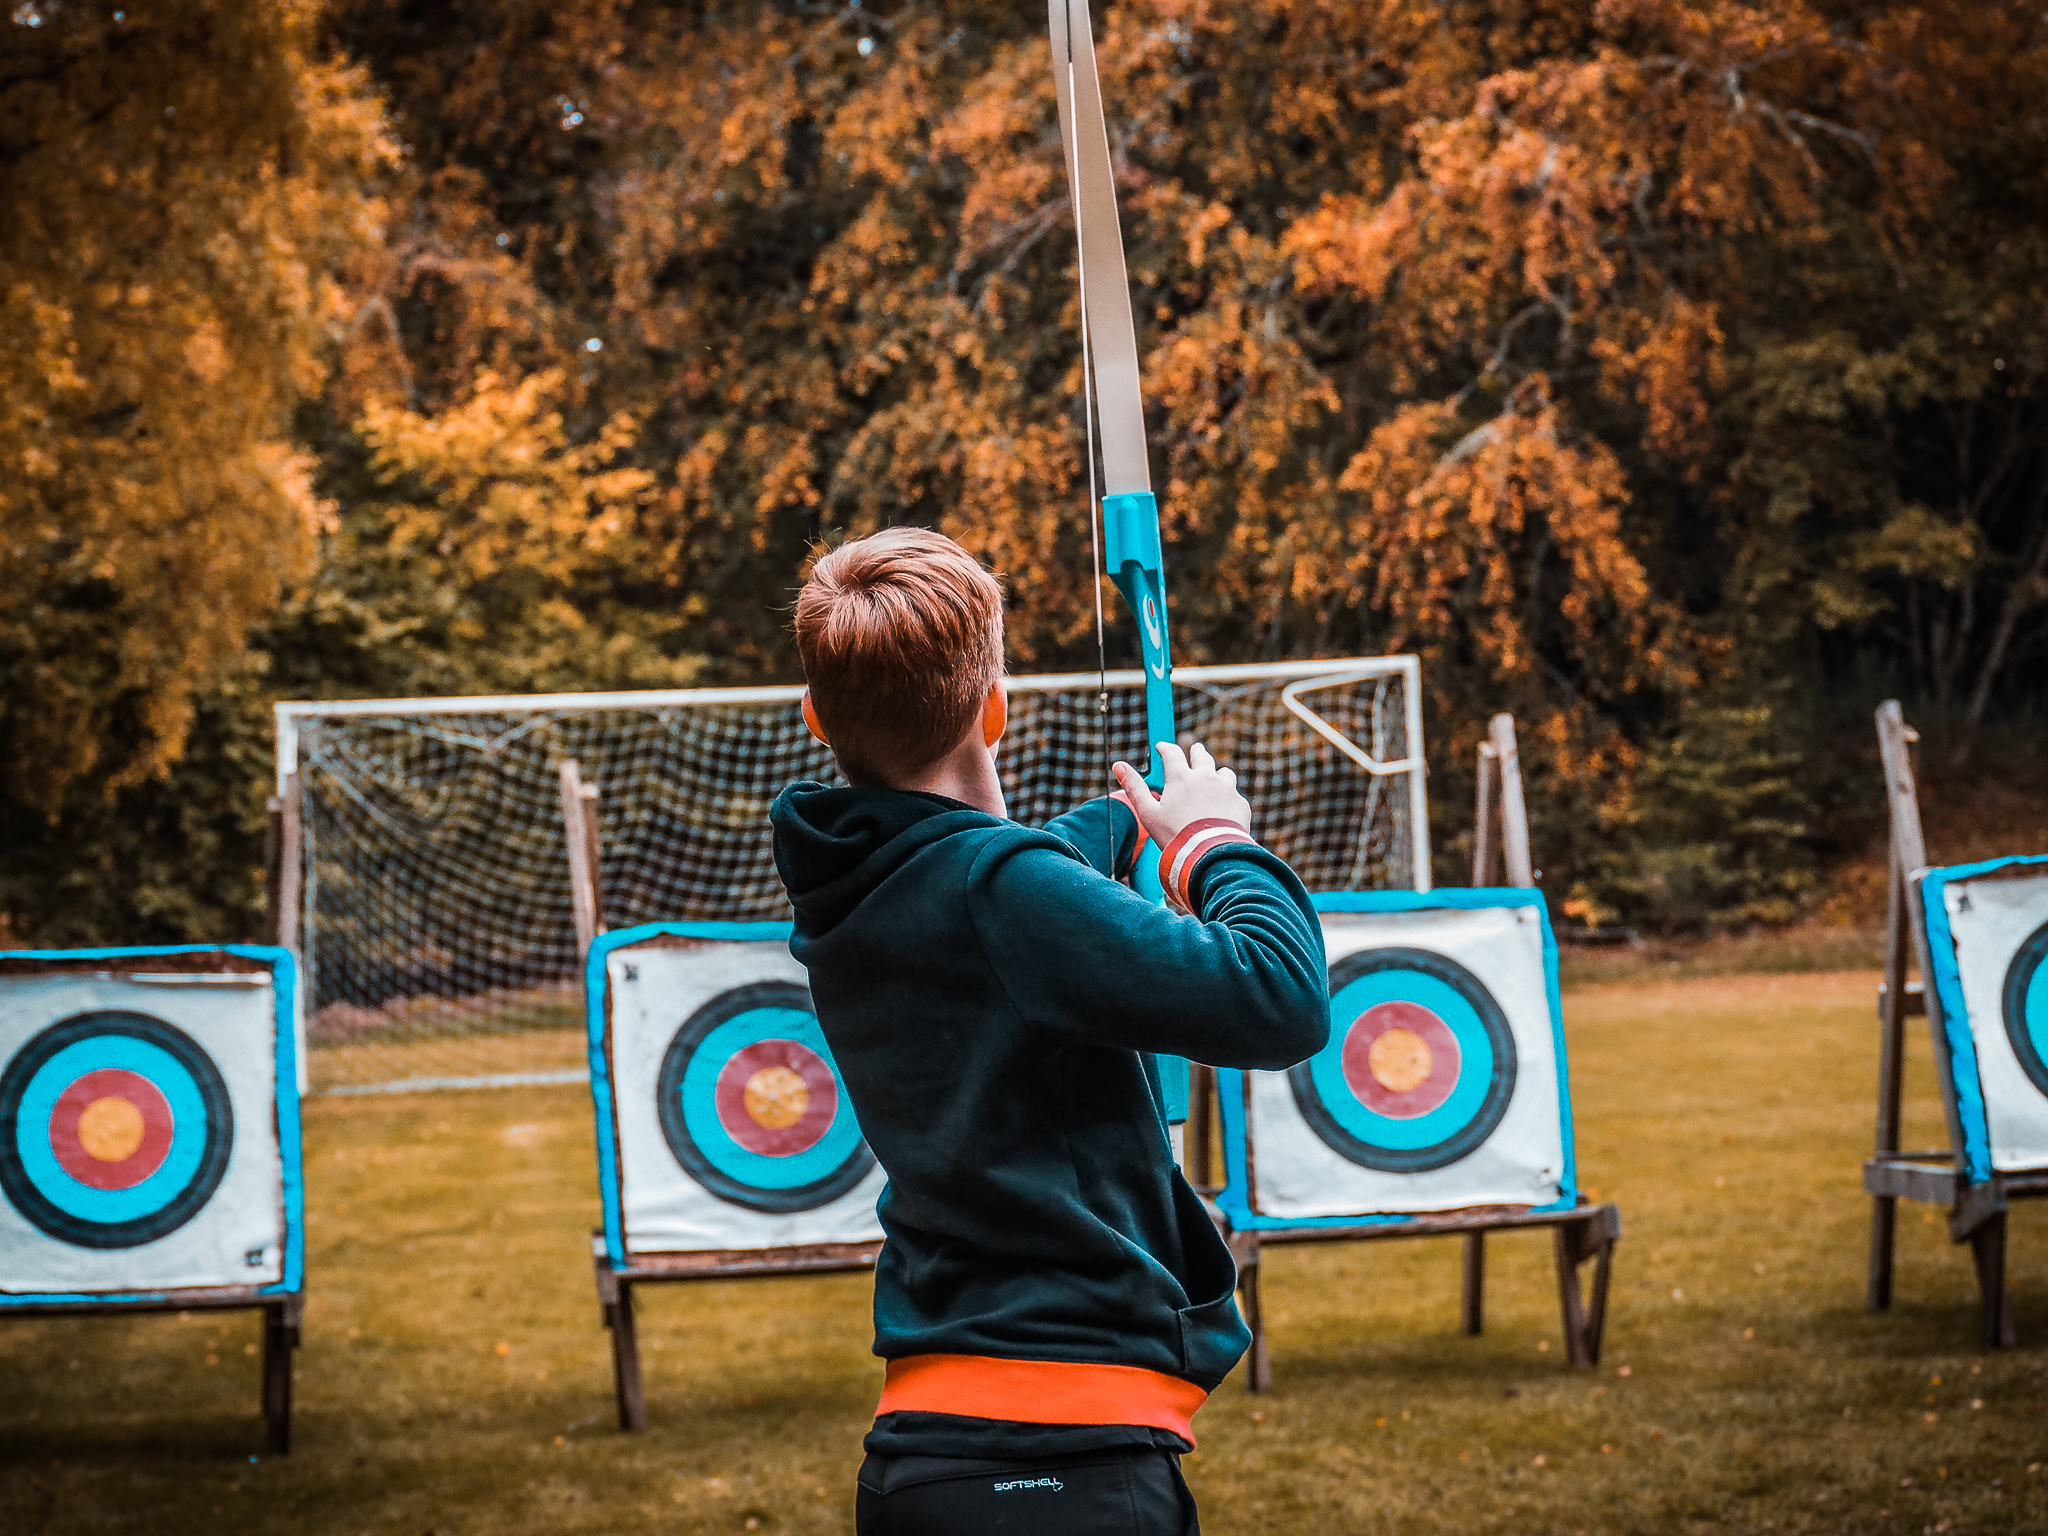 Child practices his skill at archery